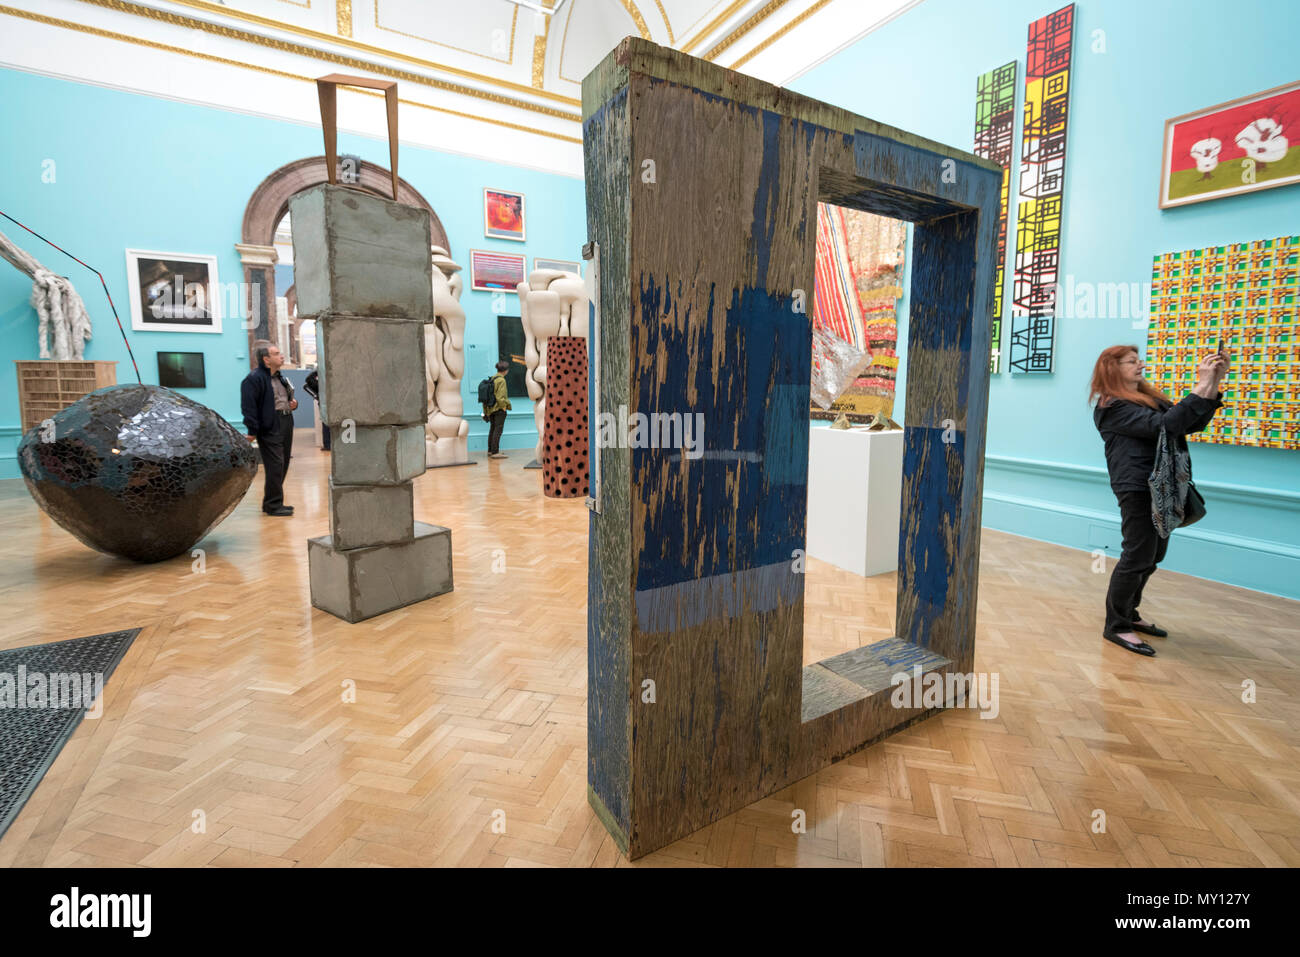 London, UK.  5 June 2018. Sculptures of all sizes at the preview of the 250th Summer Exhibition at the Royal Academy of Arts in Piccadilly, which has been co-ordinated by Grayson Perry RA this year.  Running concurrently, is The Great Spectacle, featuring highlights from the past 250 years.  Both shows run 12 June to 19 August 2018. Credit: Stephen Chung / Alamy Live News - Stock Image